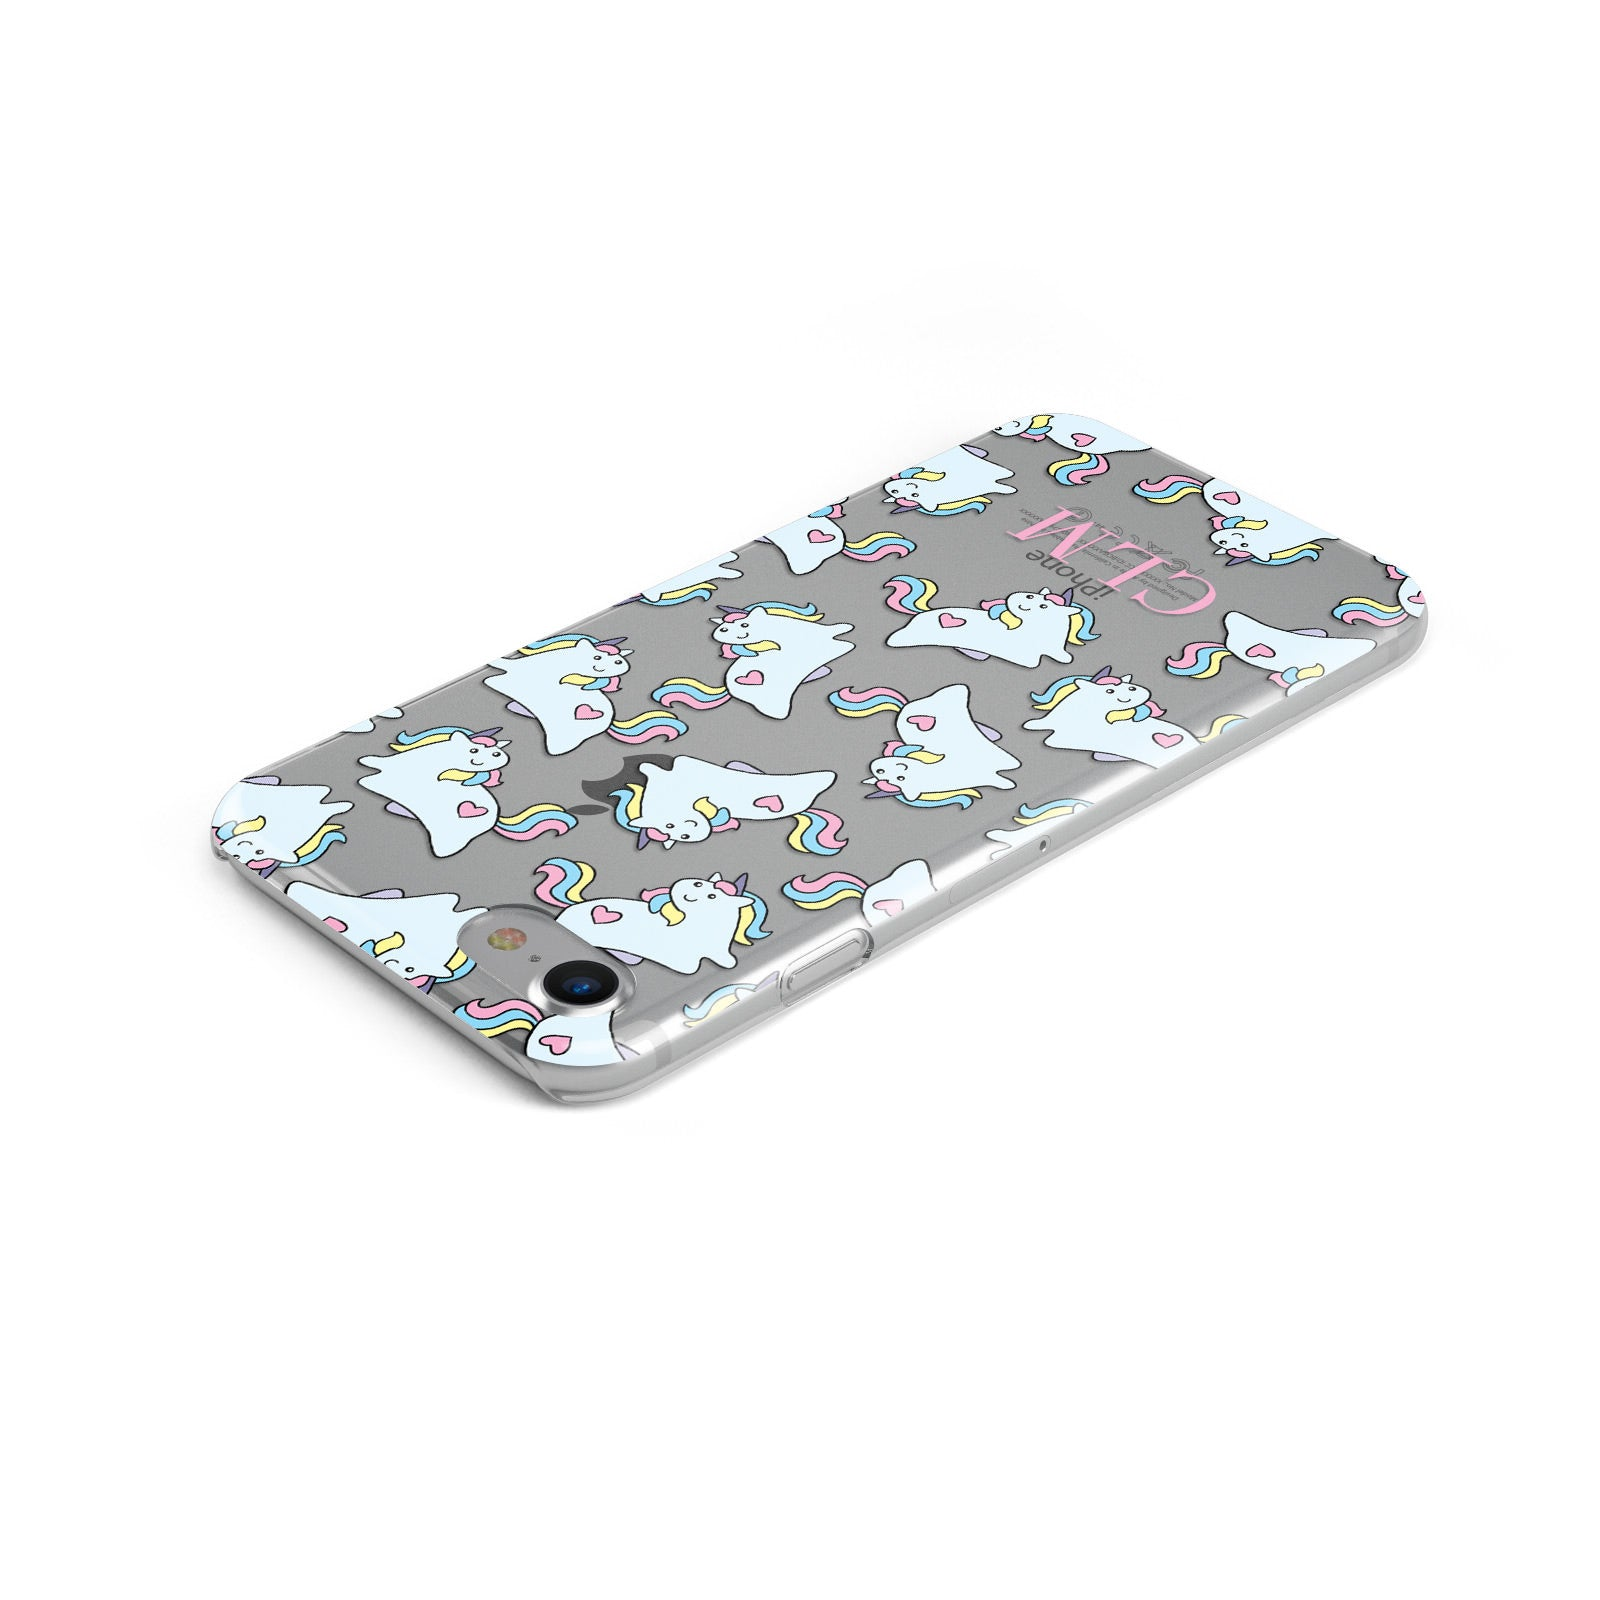 Baby Unicorn Transparent With Initials Apple iPhone Case Top Cutout